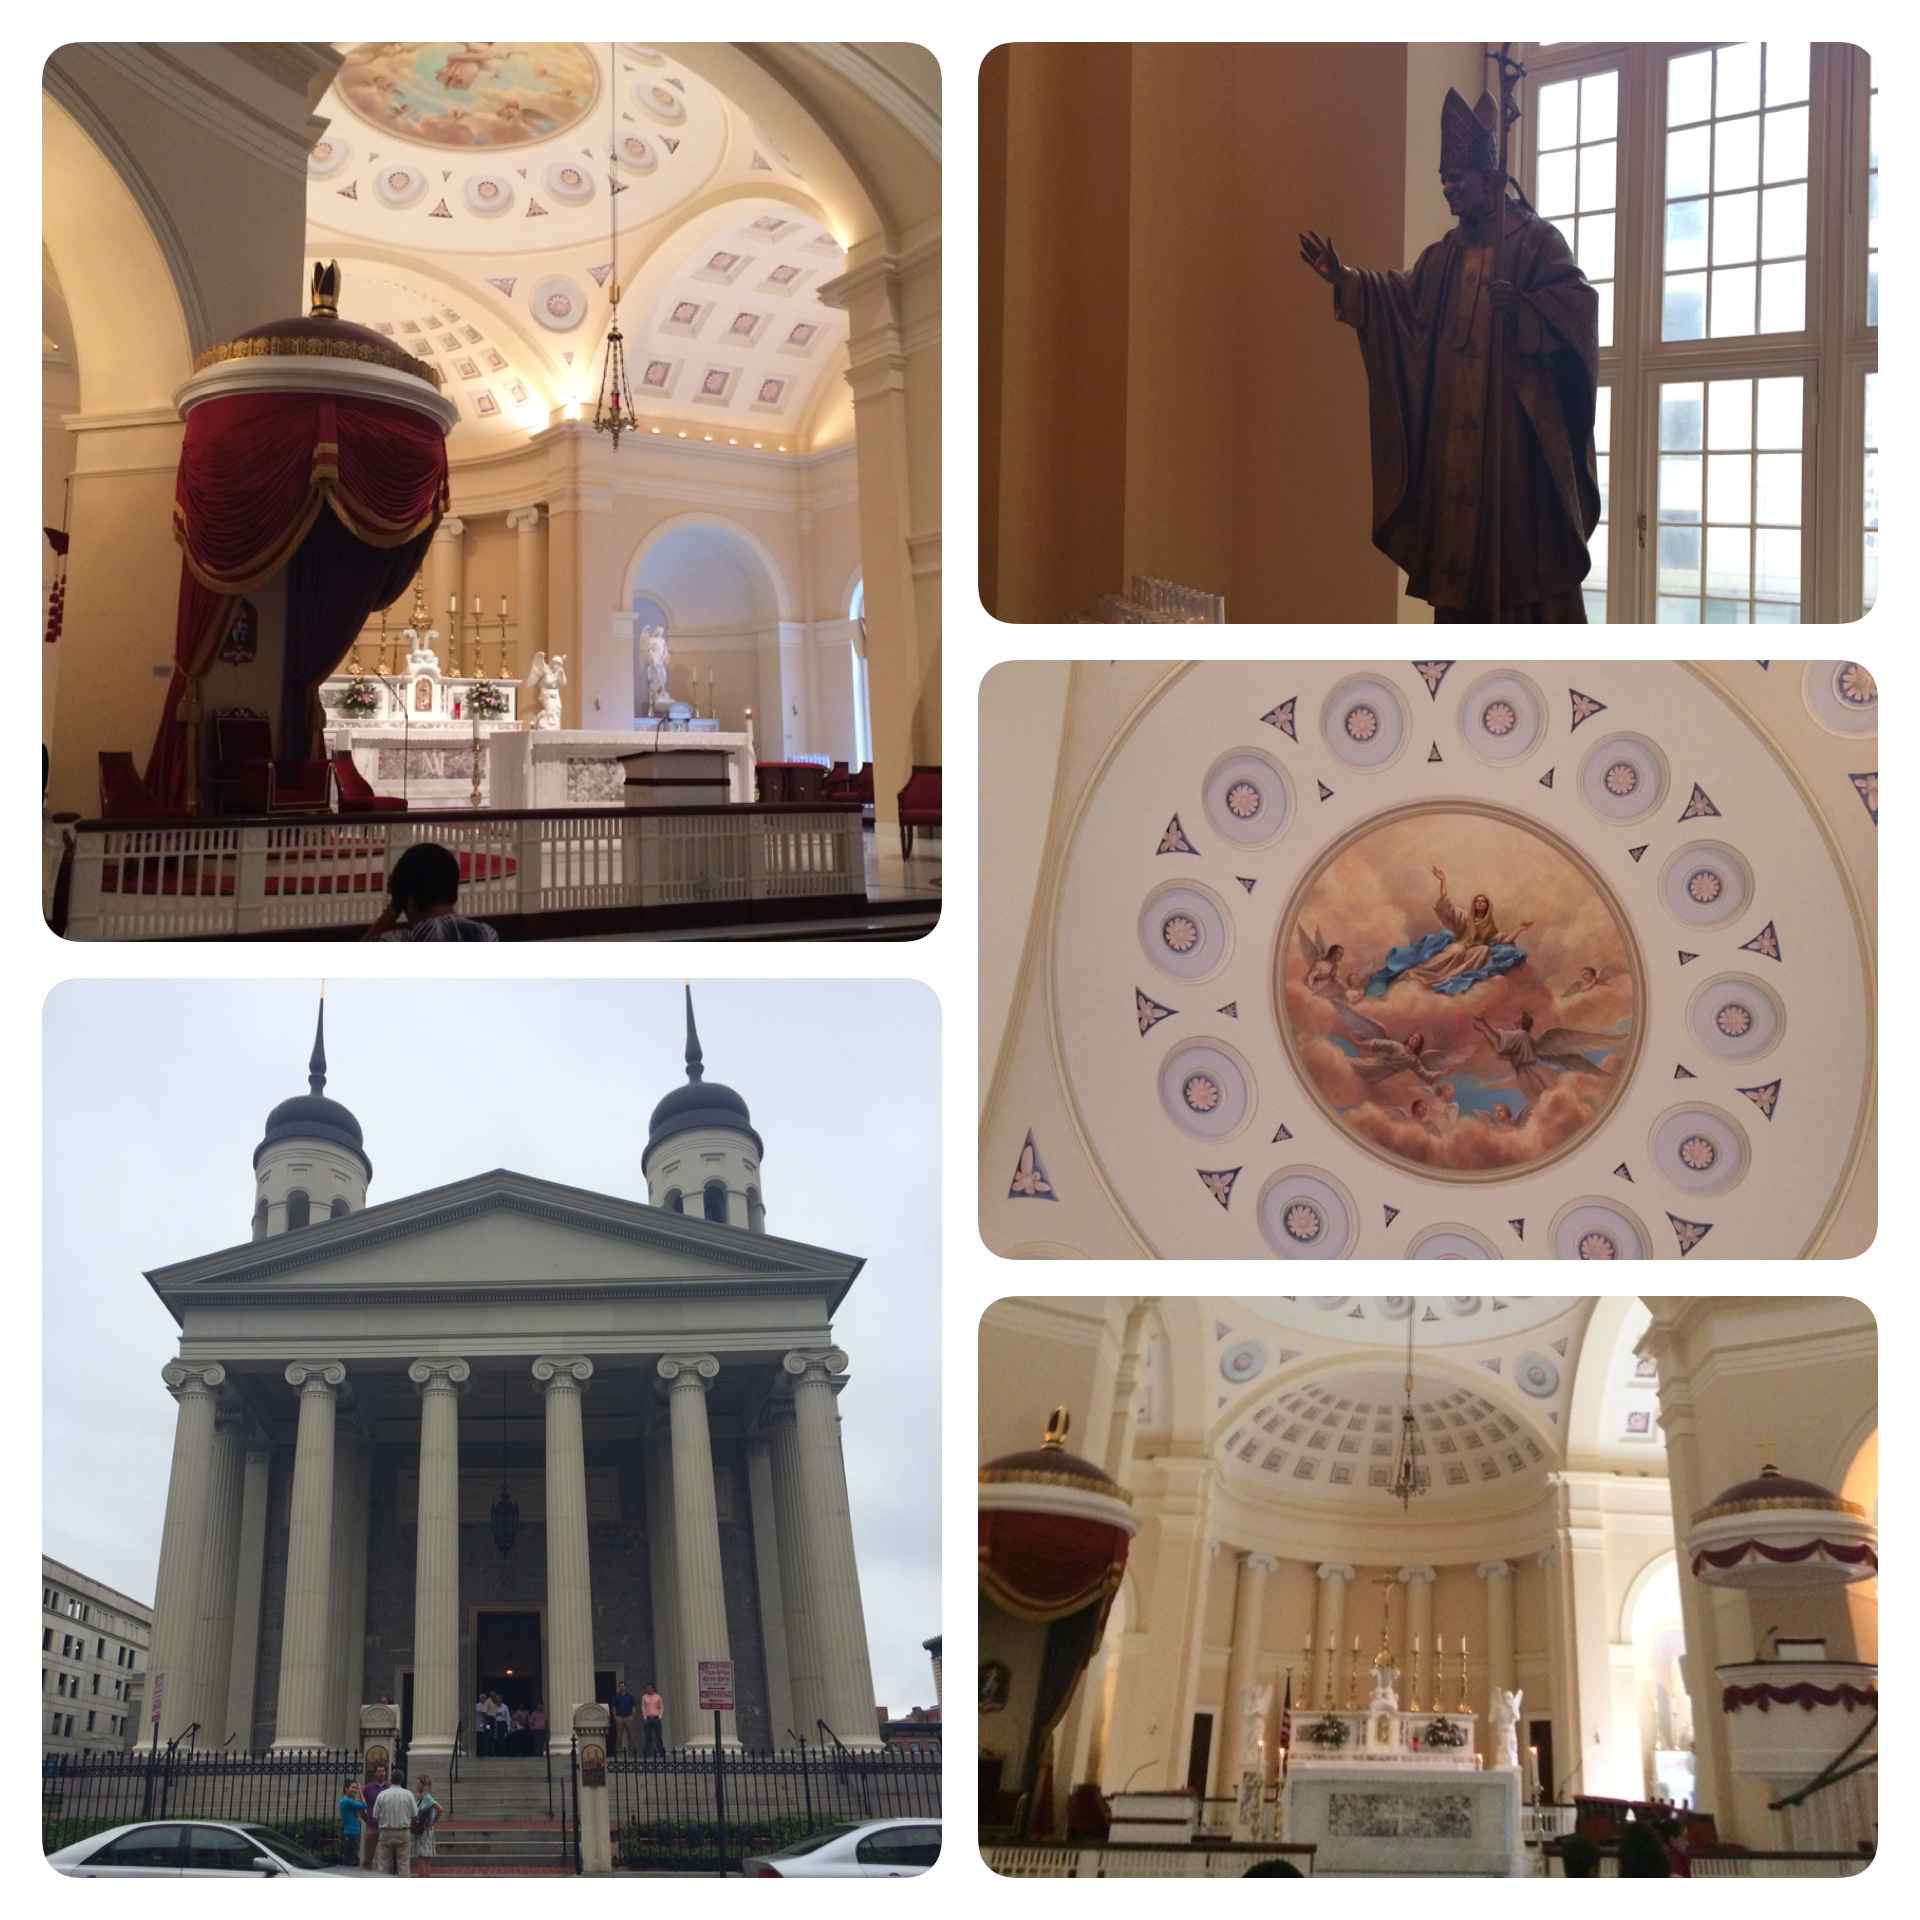 The Baltimore Basilica is a beautiful church.